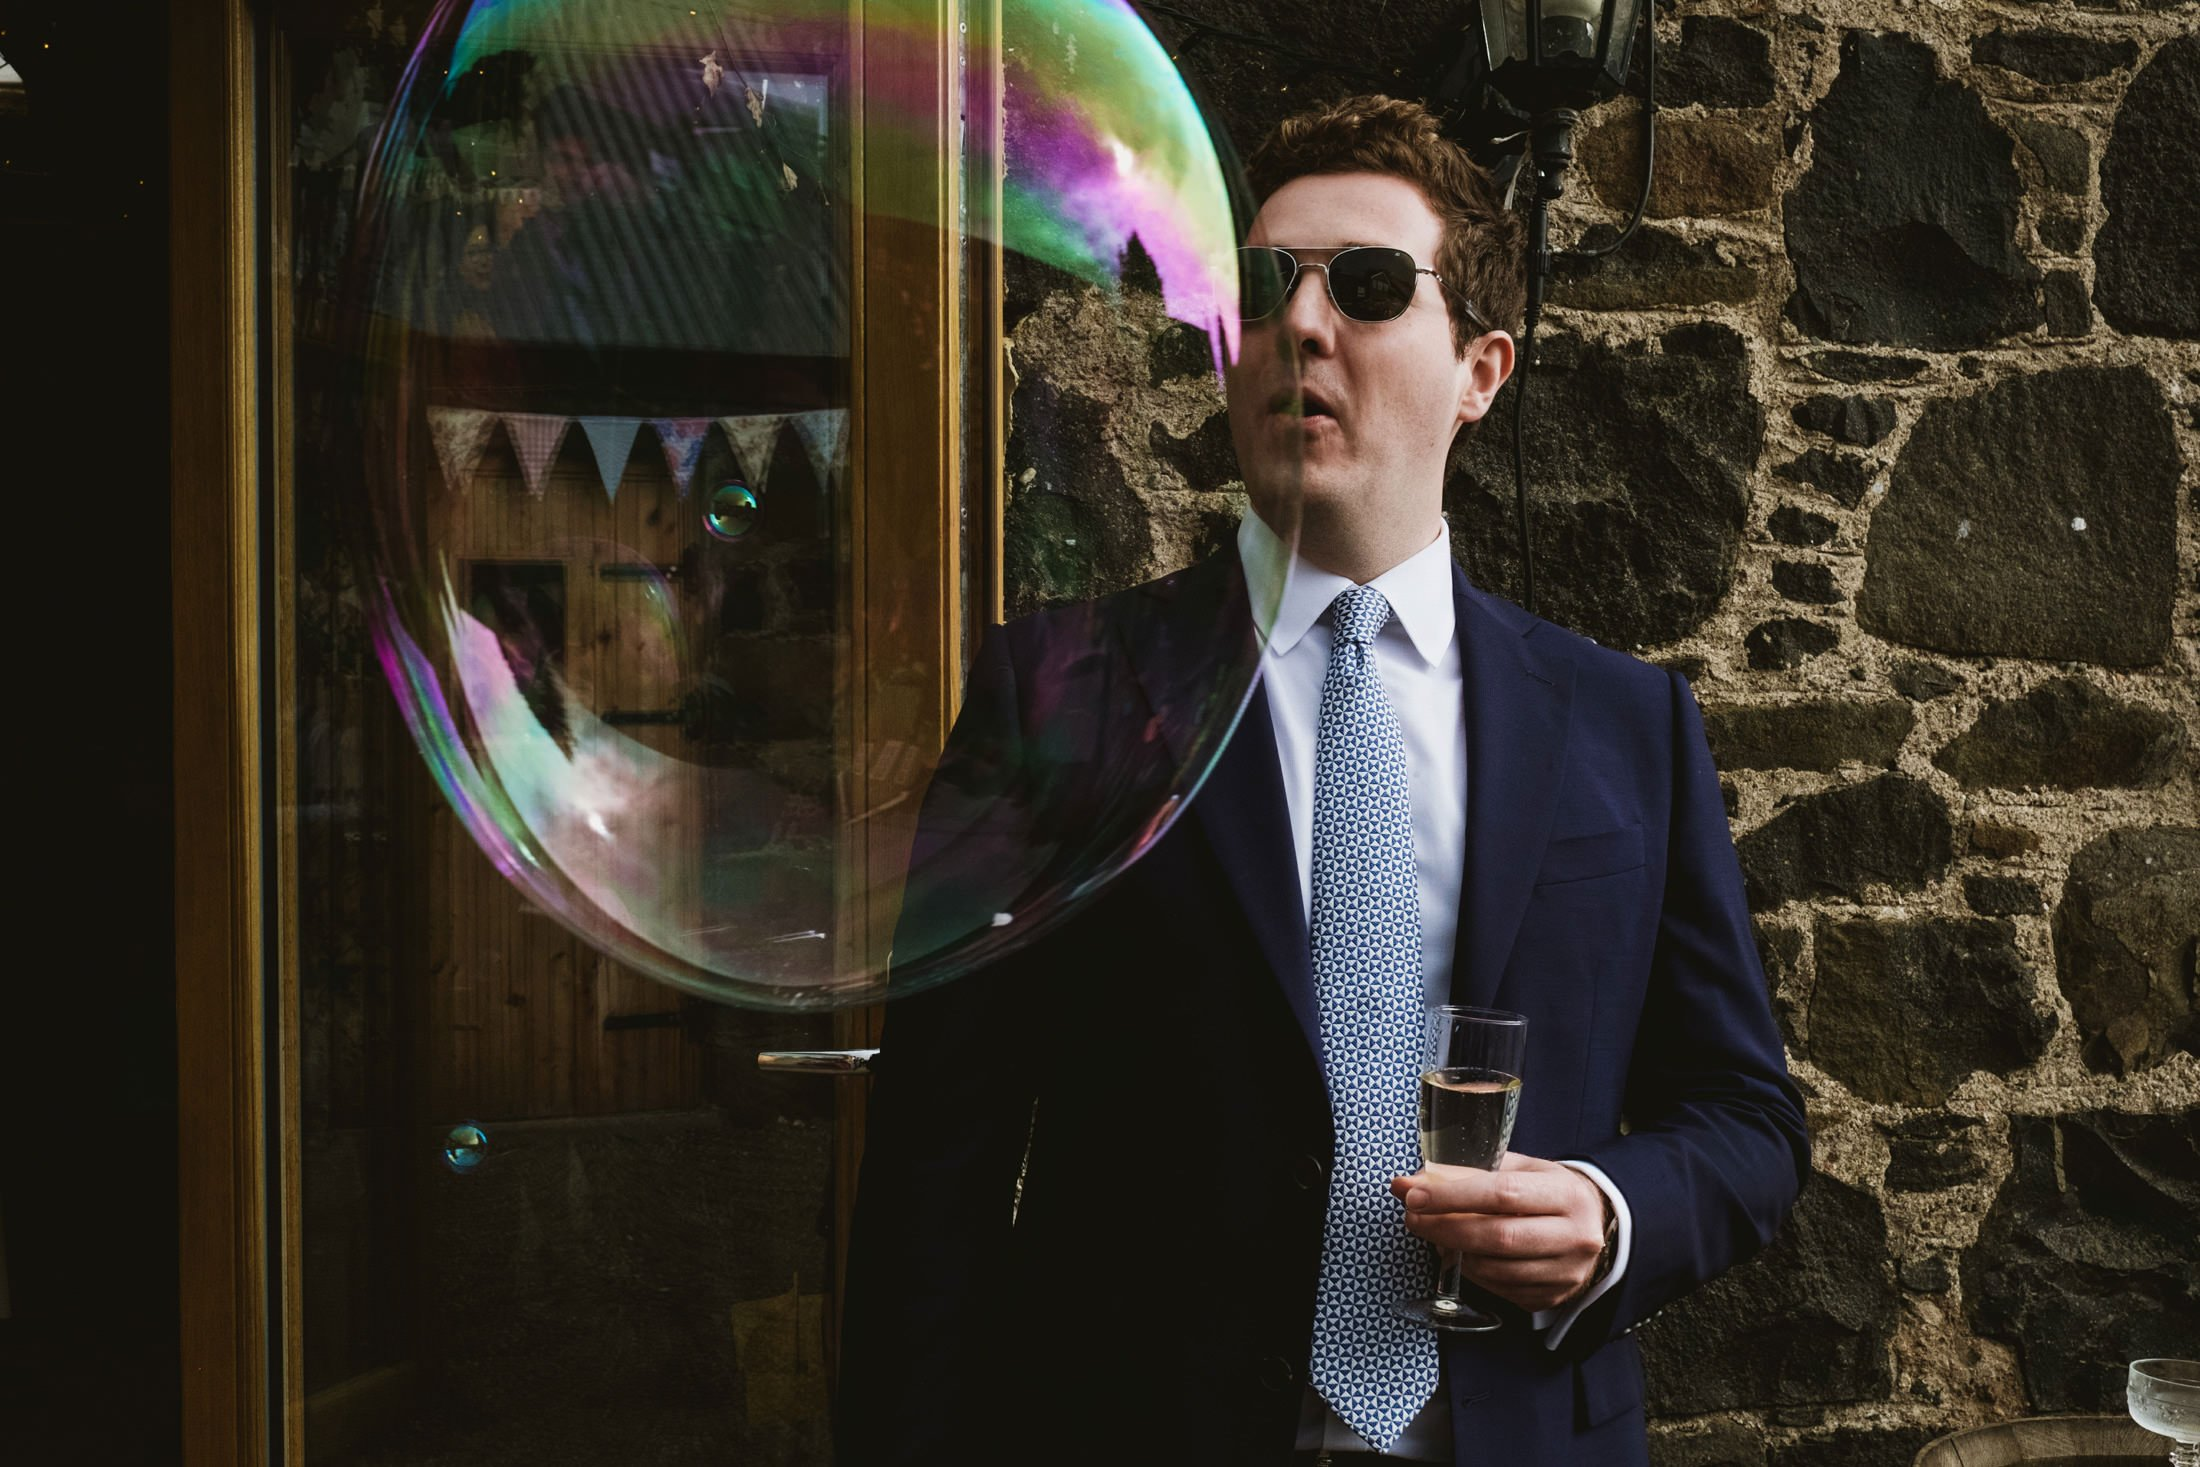 Comrie Croft Wedding Photography, Big bubble and a wedding guest